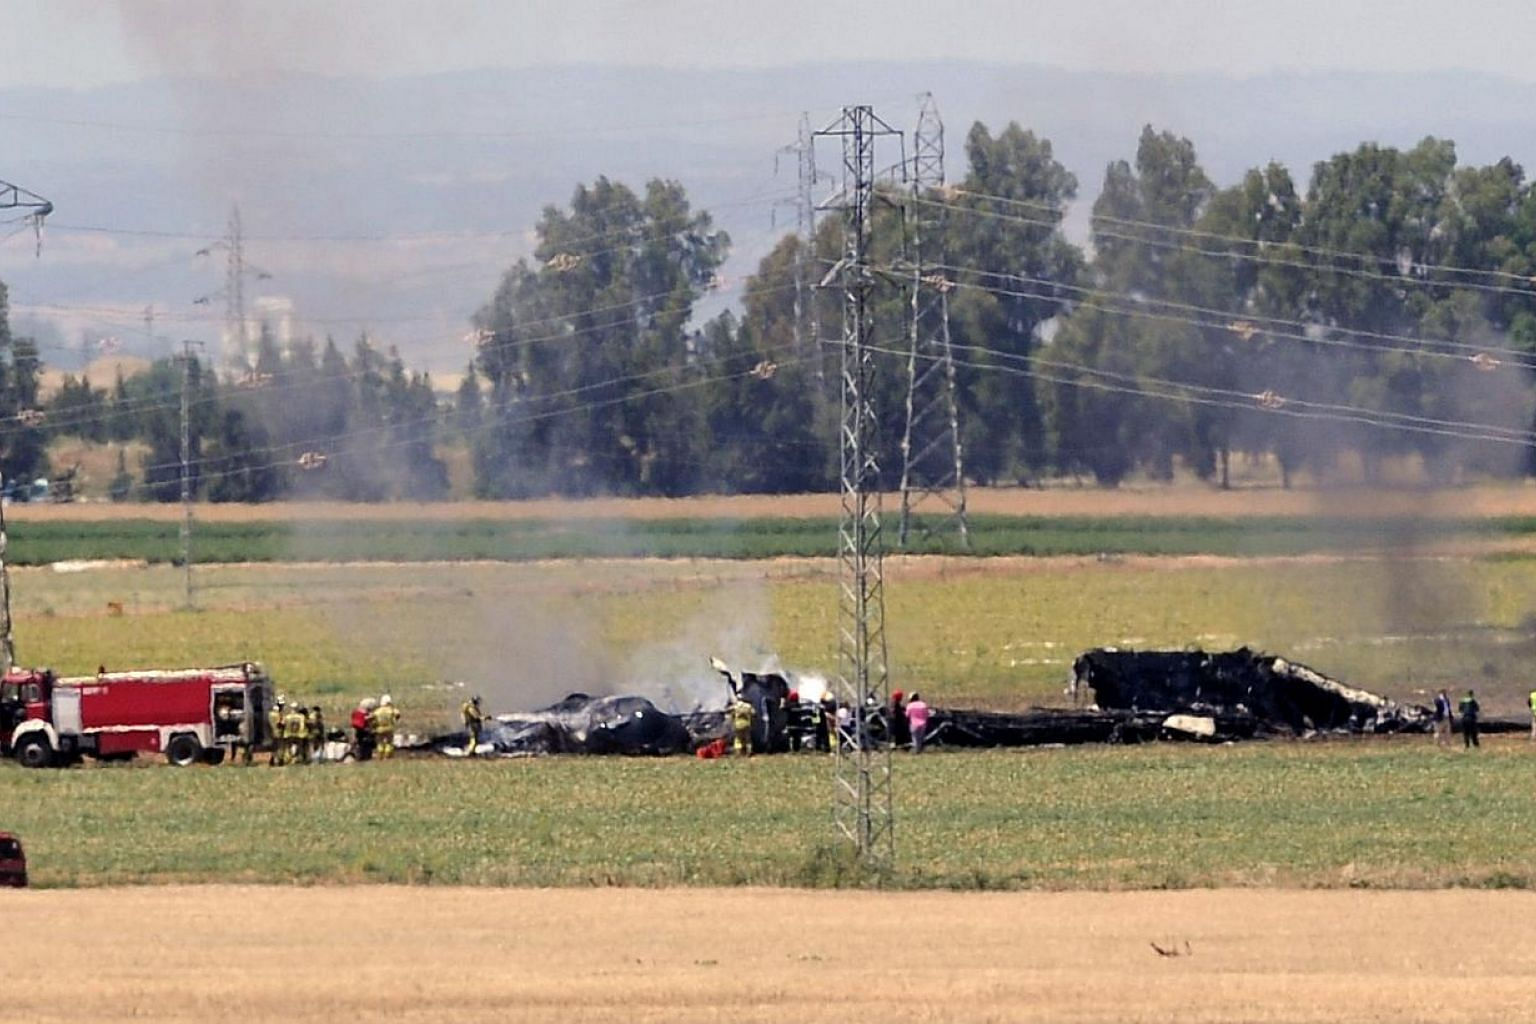 A view shows the wreckage of an Airbus A400M military transport plane after it crashed near Sevilla on May 9, 2015.Germany has grounded its Airbus A400M military transport aircraft after a similar plane crashed in Spain during a test flight on